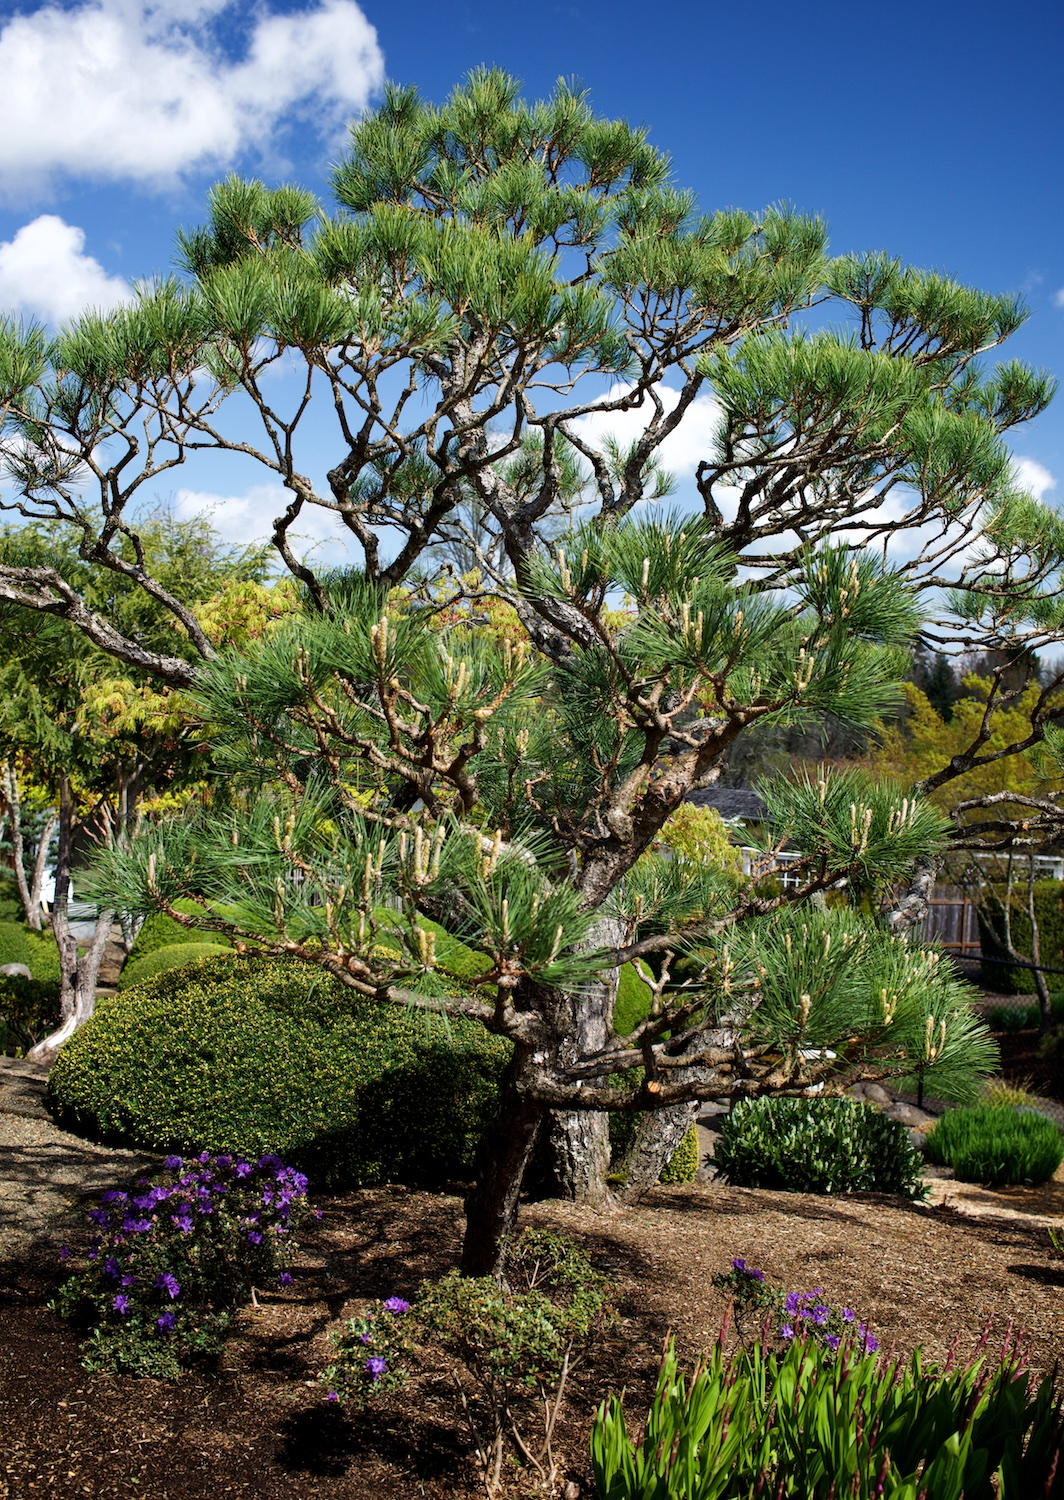 Japanese black pines (Pinus thunbergii) in the same bed today.